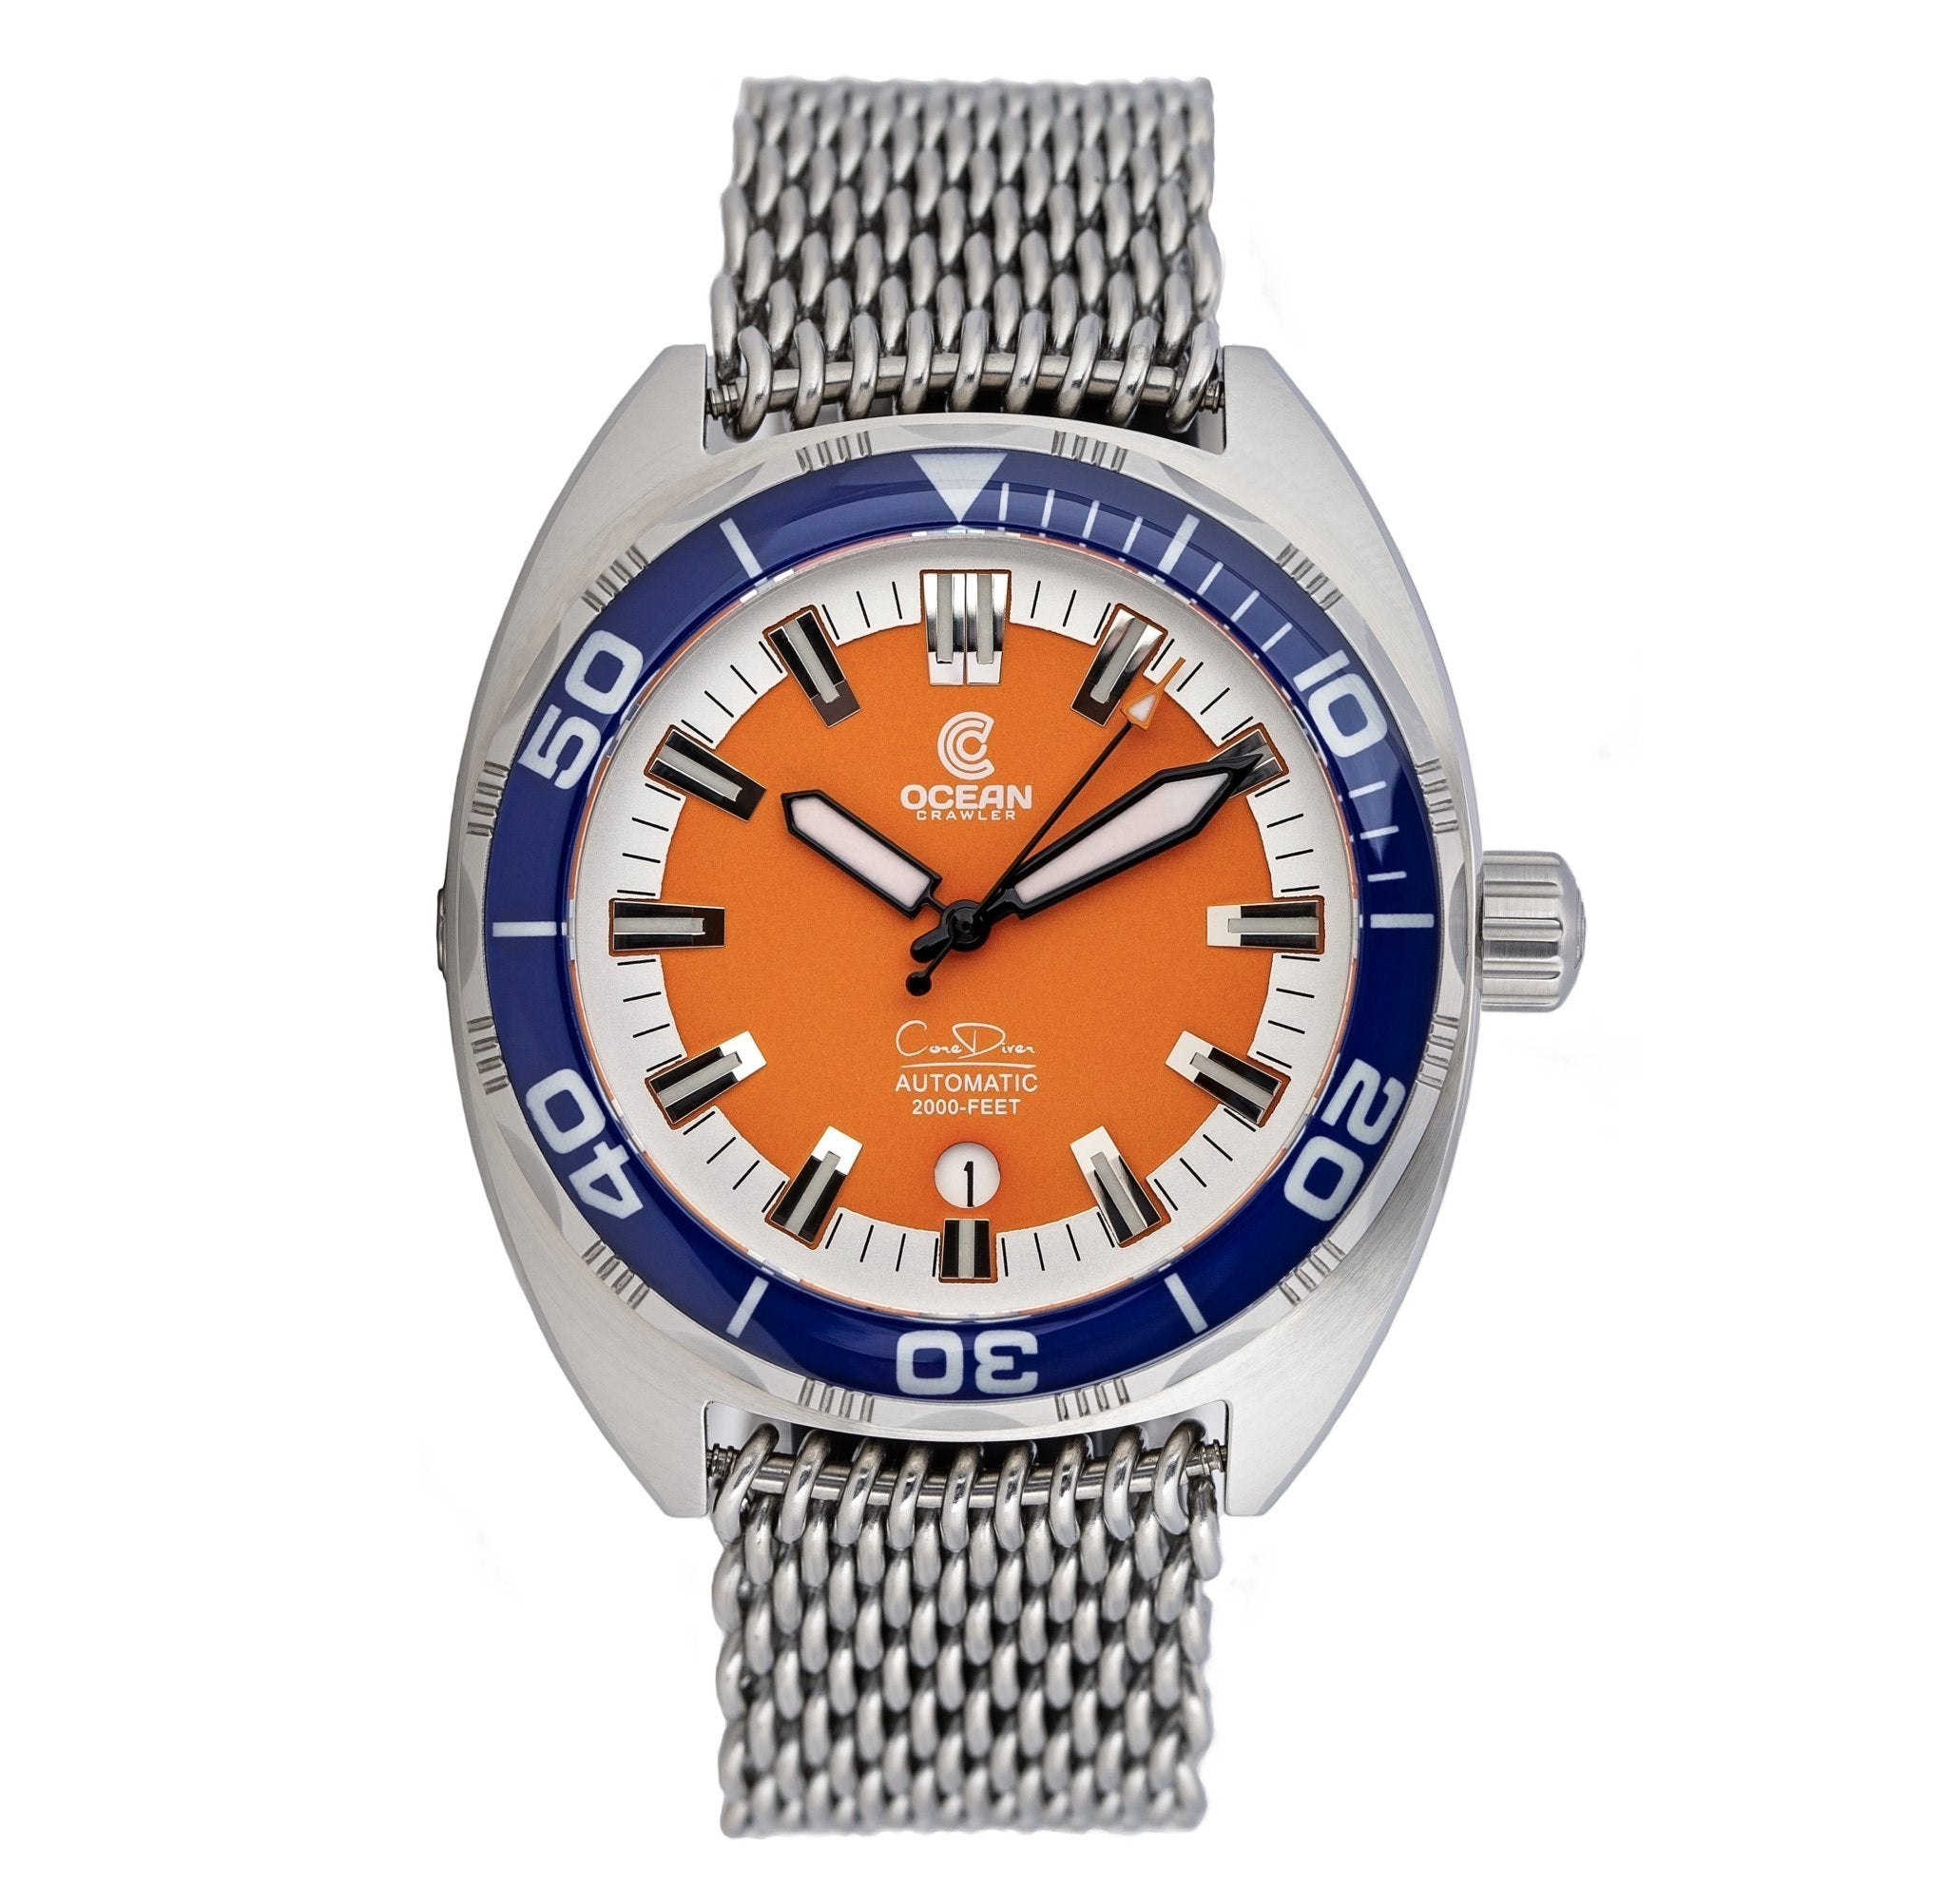 Ocean Crawler Core Diver - Orange - Ocean Crawler Watch Co.